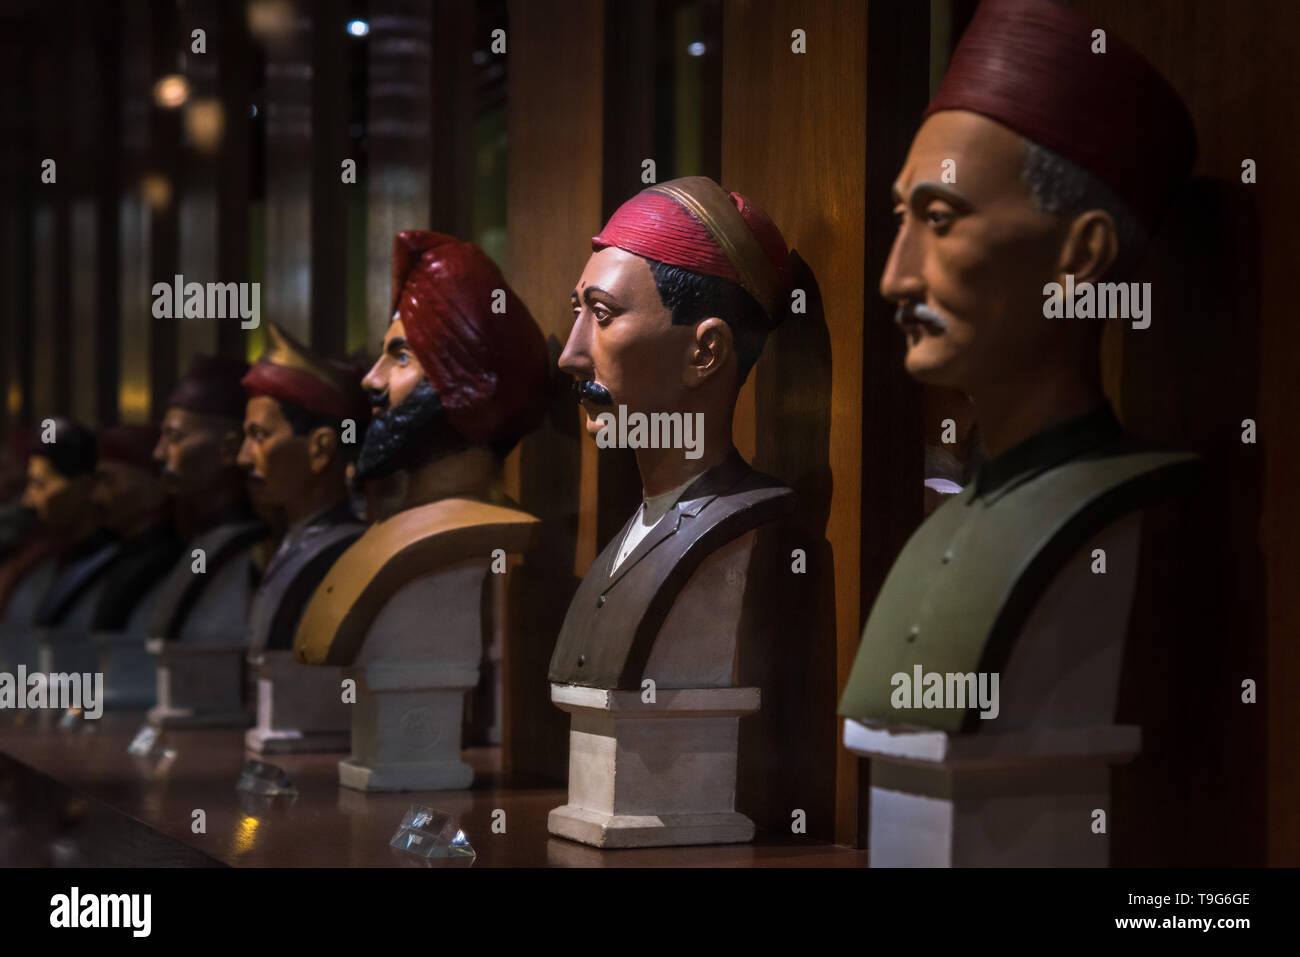 People of the city, Dr Bhau Daji Lad Museum, Mumbai, India - Stock Image